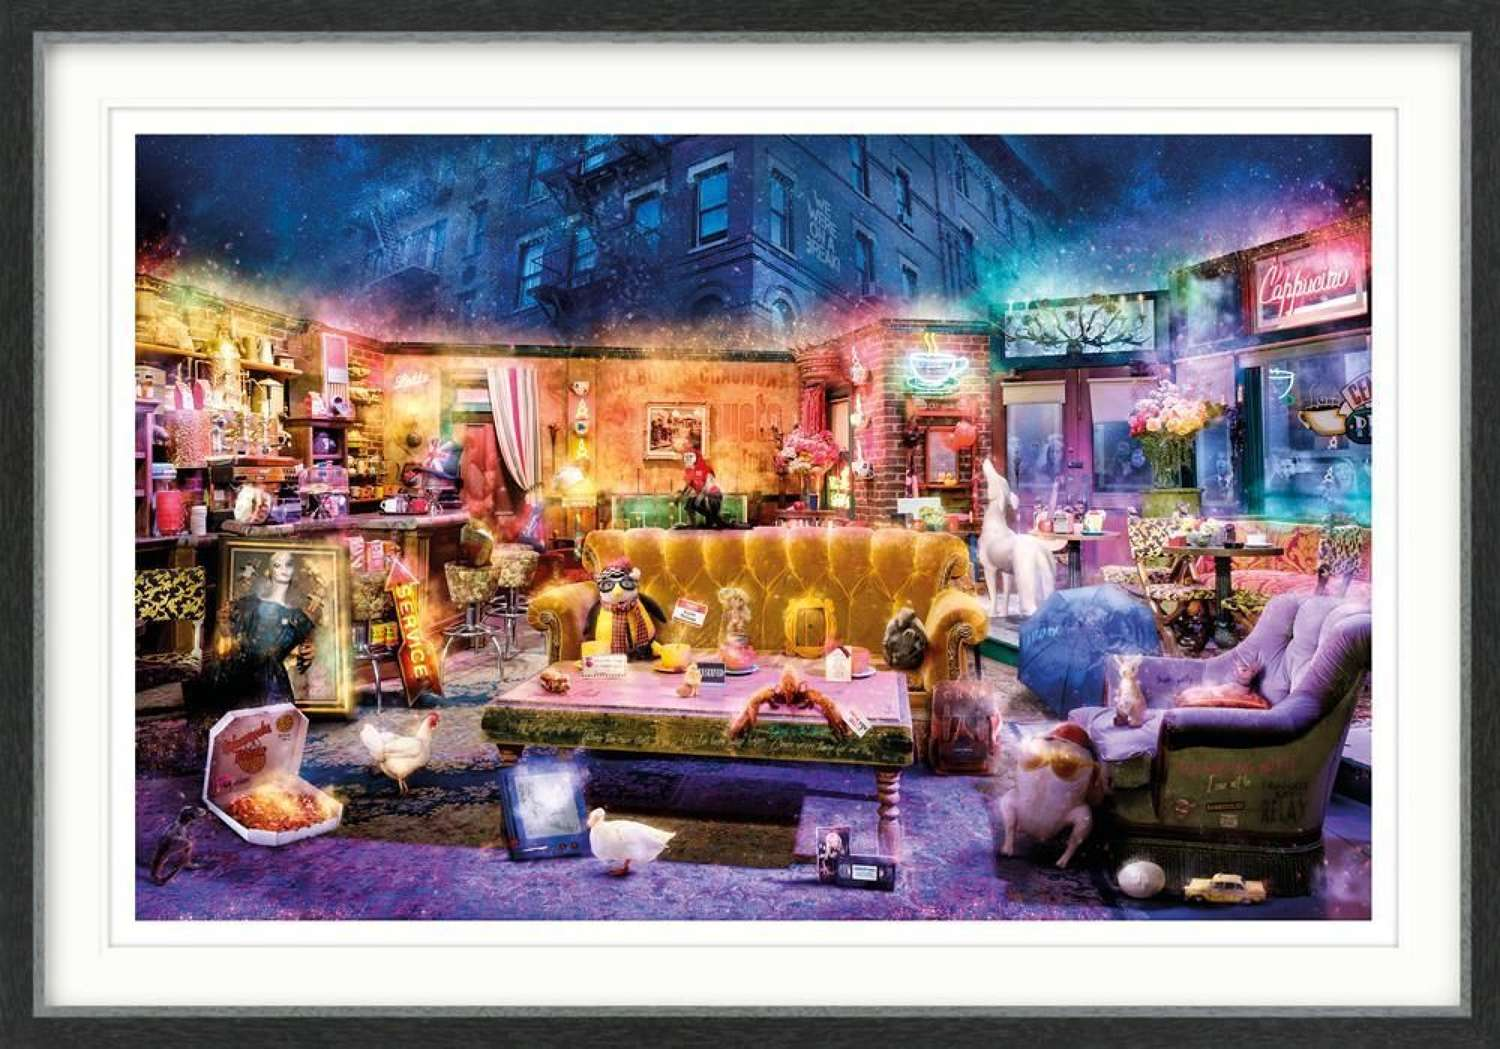 I'll Be There For You (Friends) Framed Art Print by Mark Davies